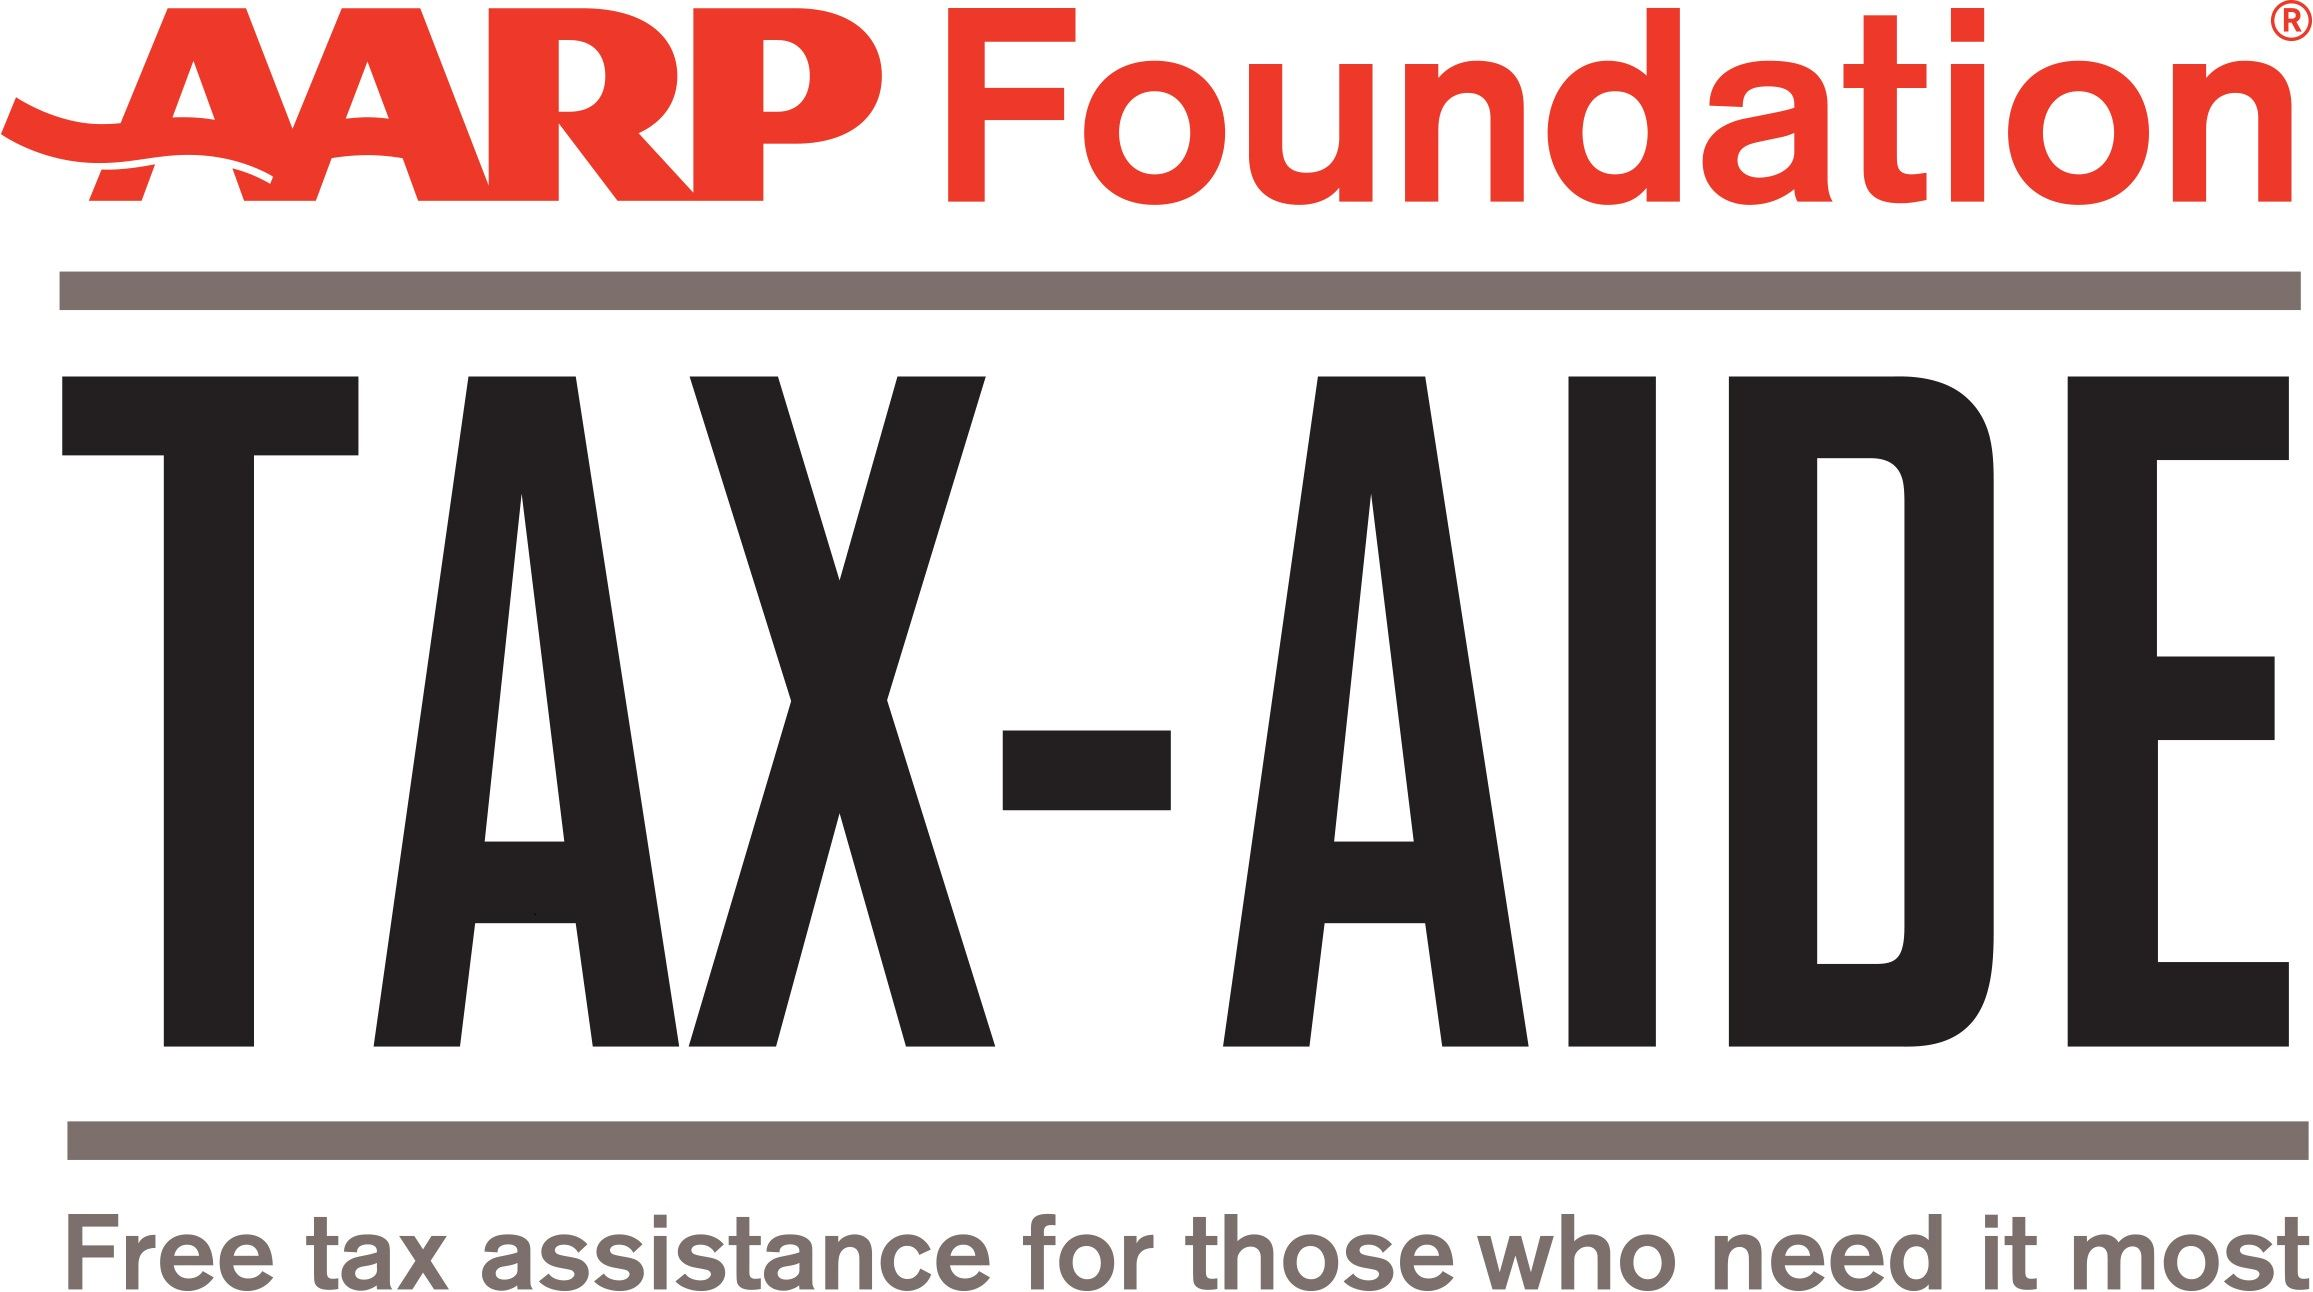 AARP Tax Aide logo in red grey and black lettering